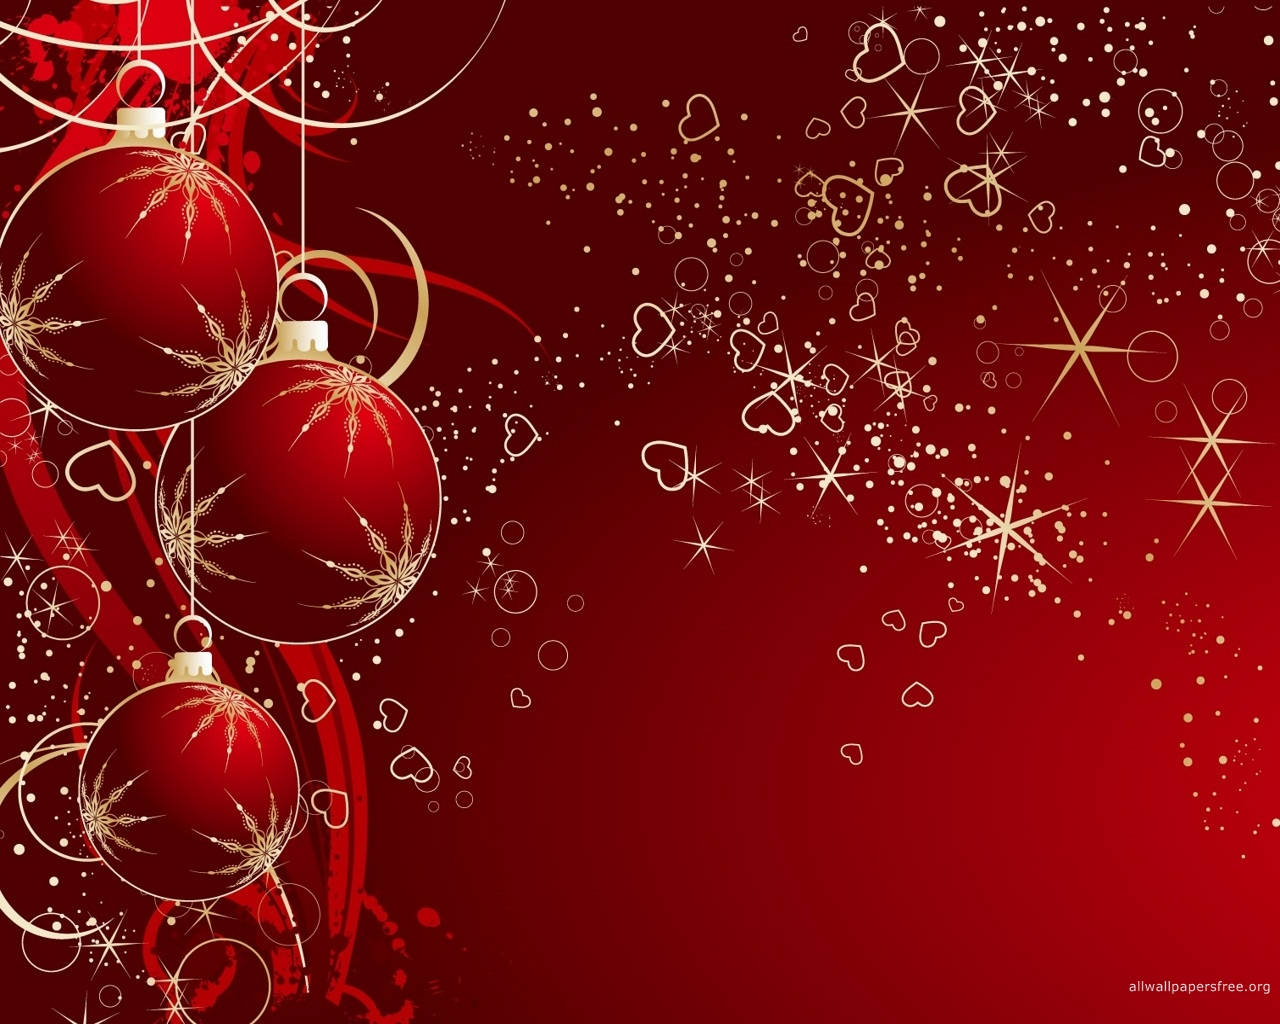 Christmas holiday wallpaper backgrounds   SF Wallpaper 1280x1024